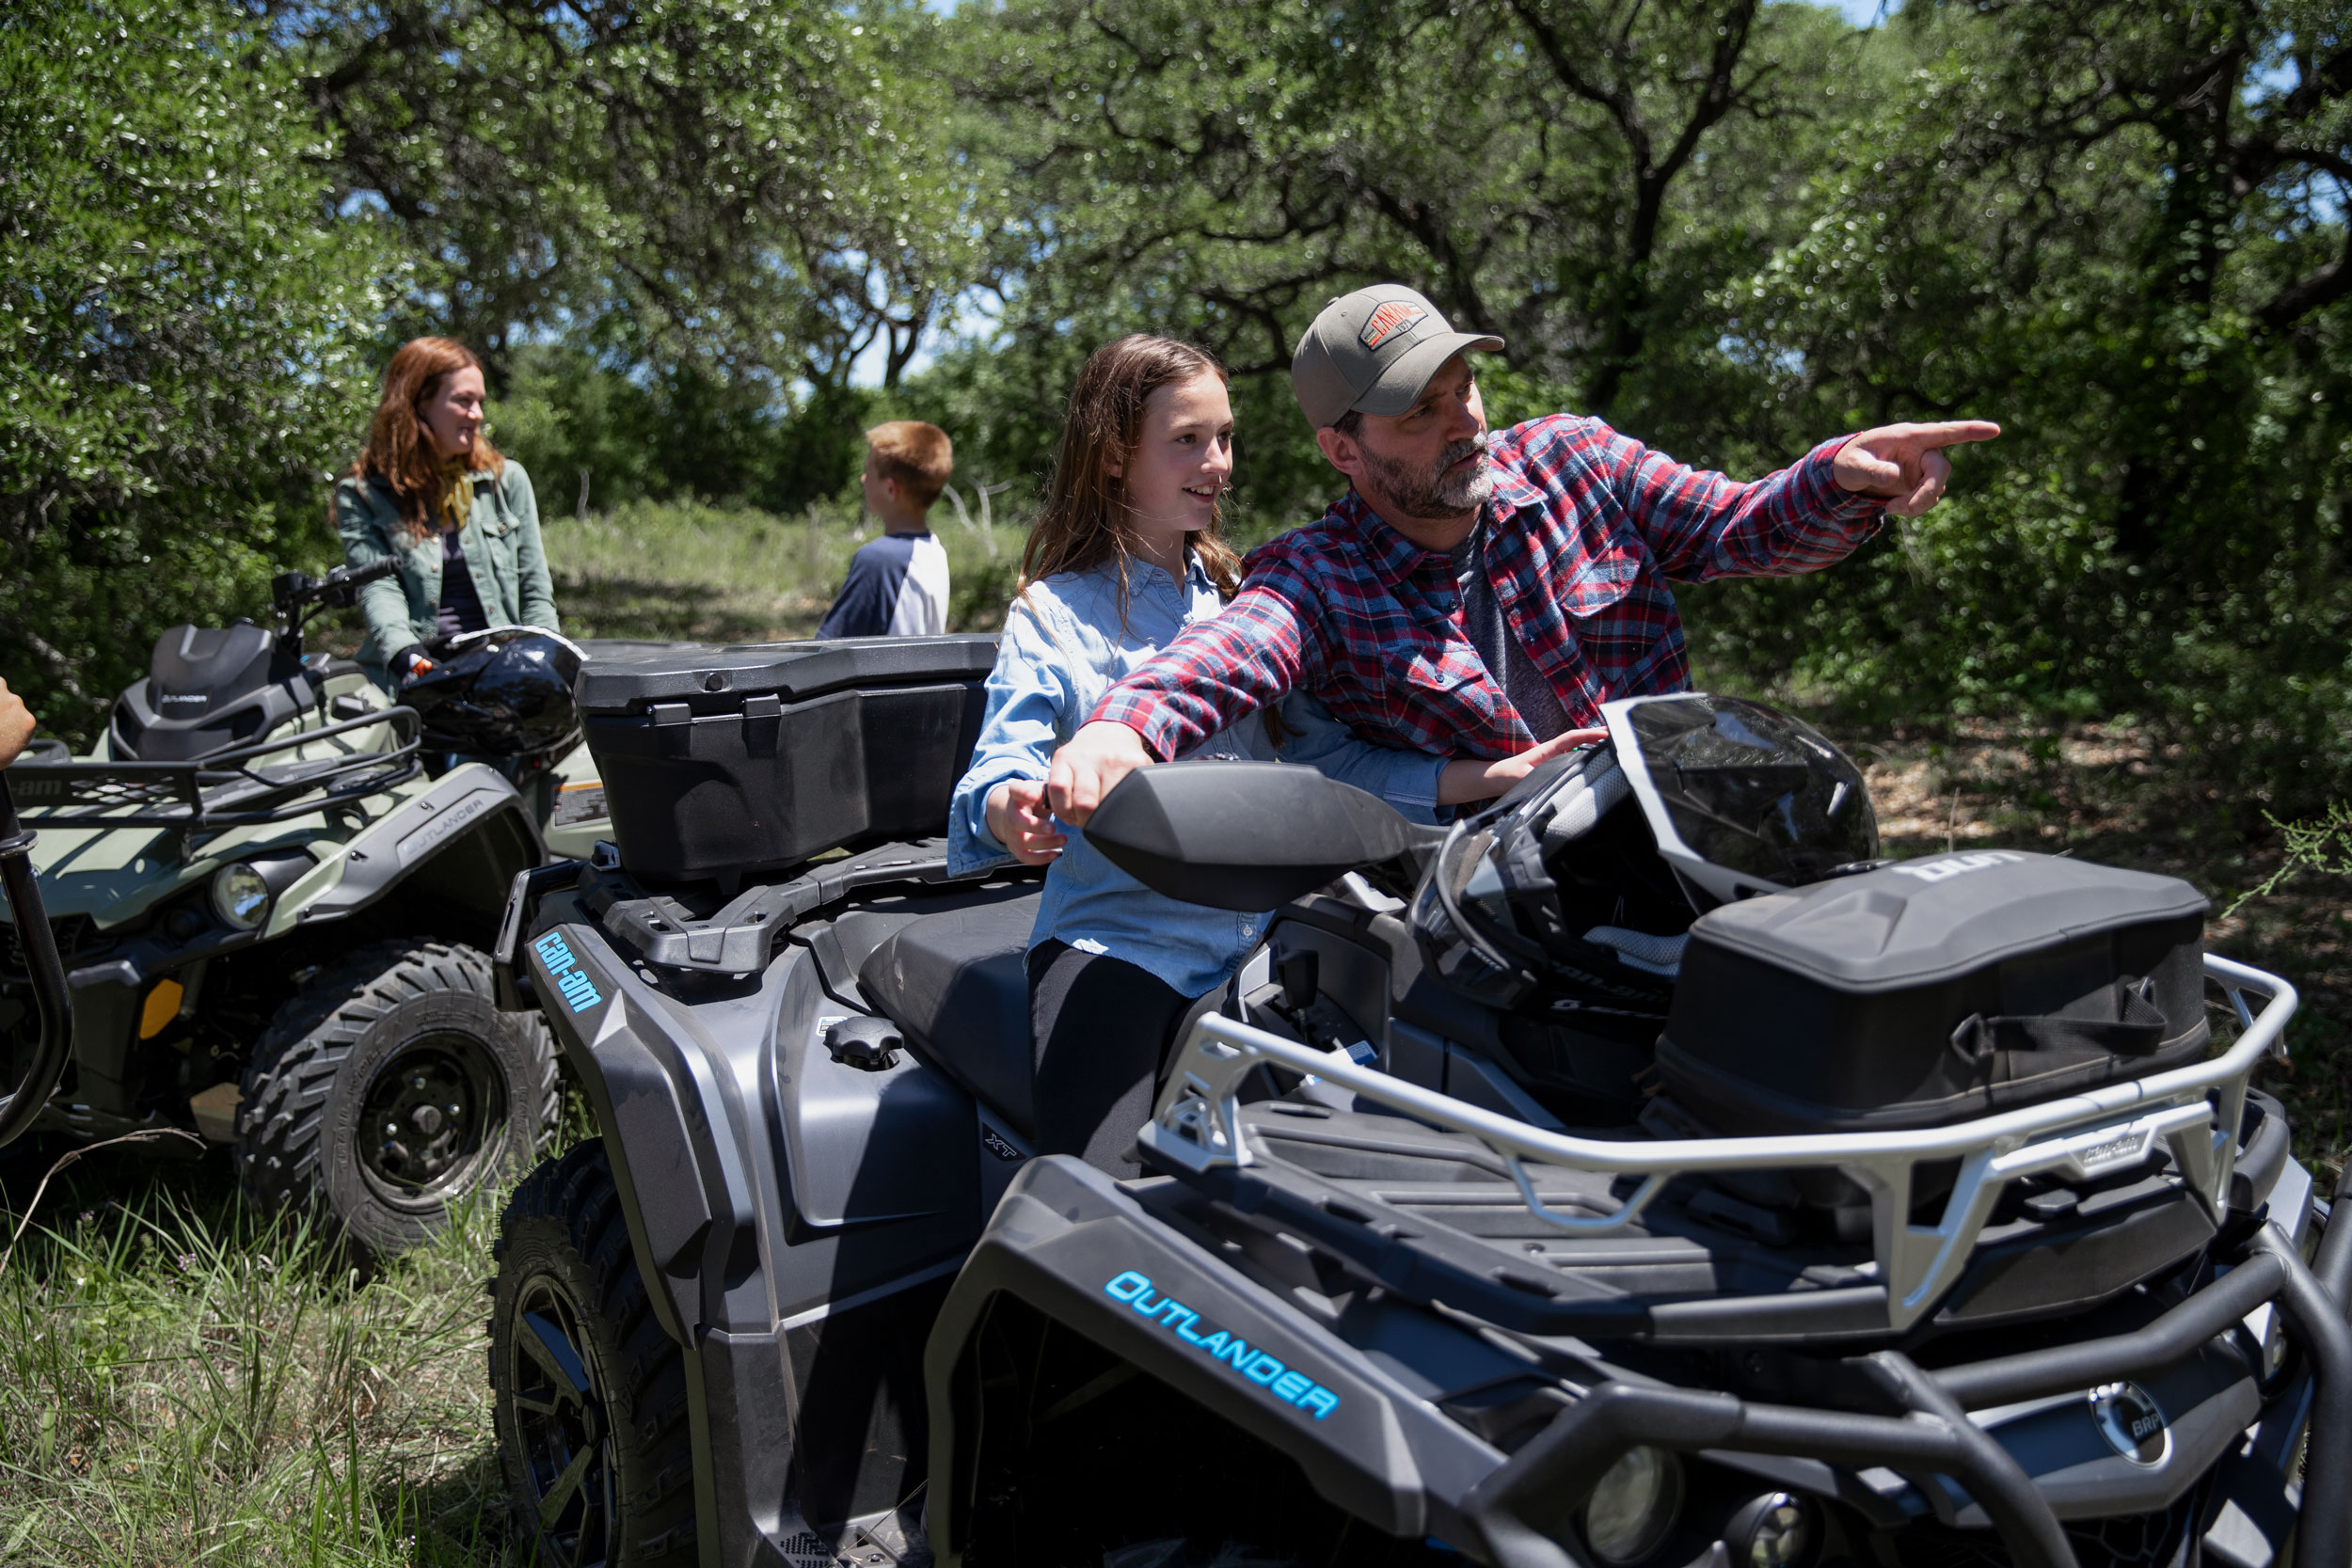 Family ride with Can-Am ATVs